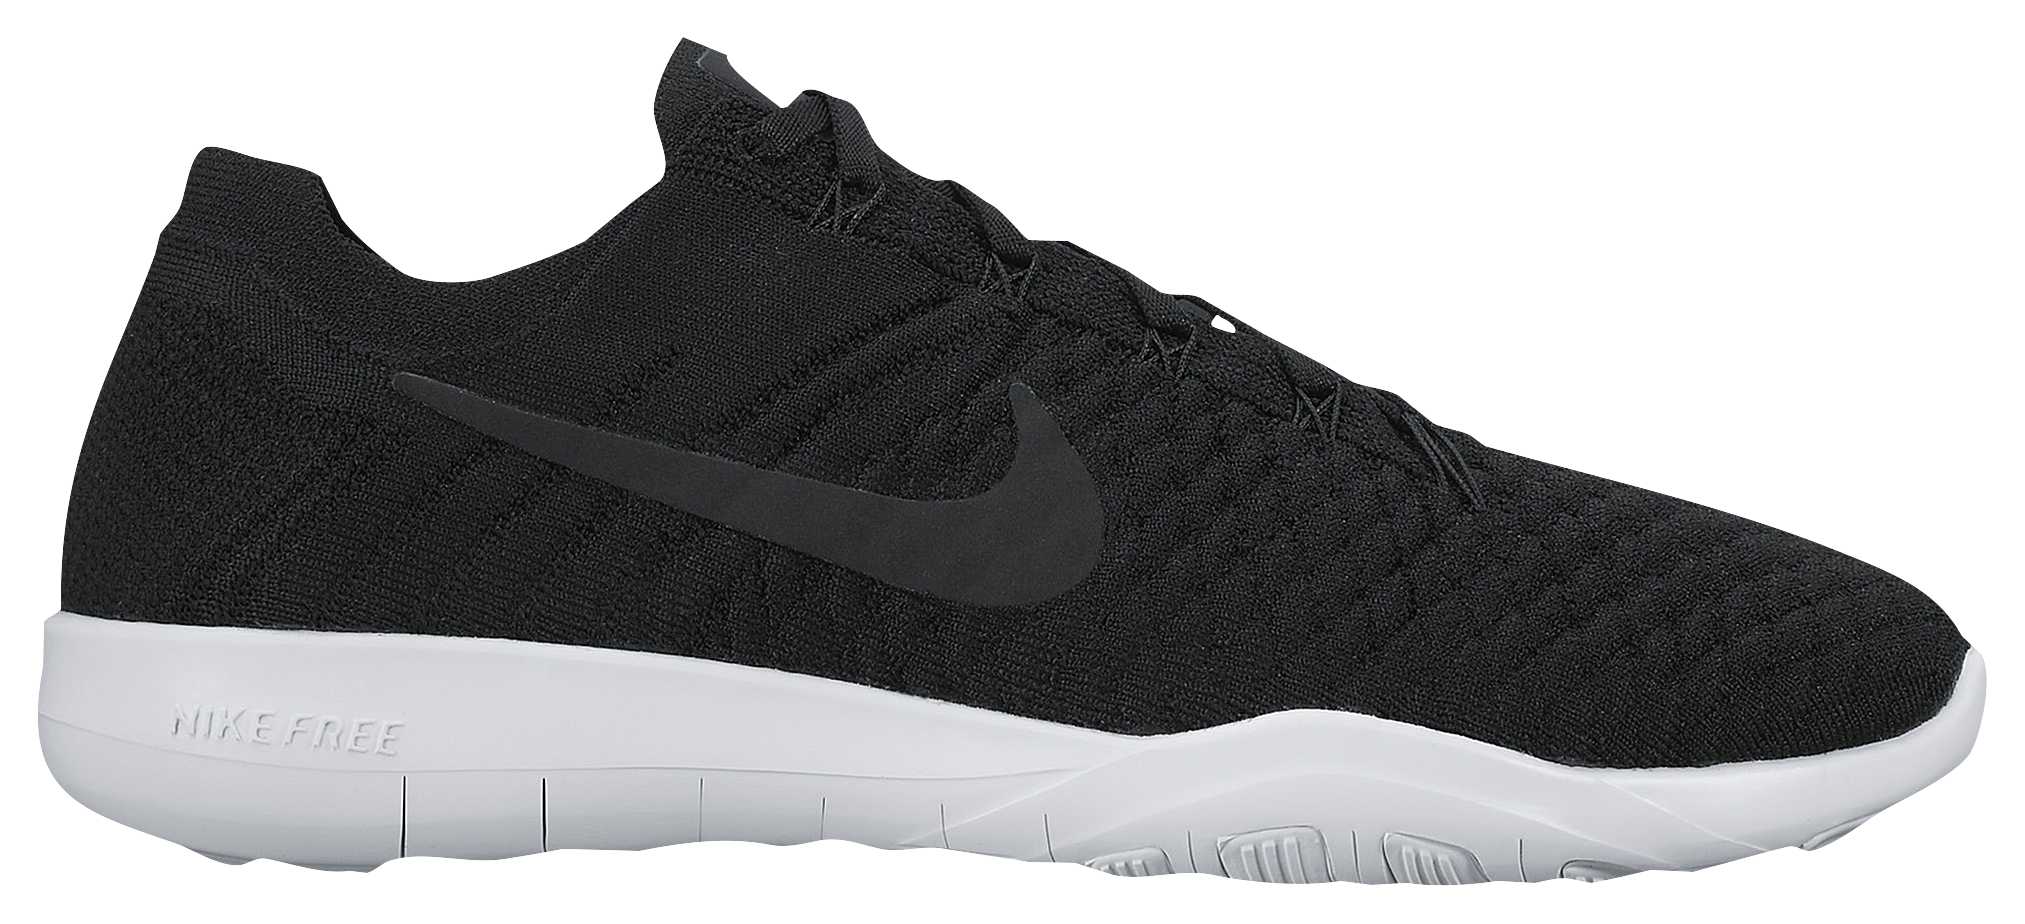 nike free for women in black